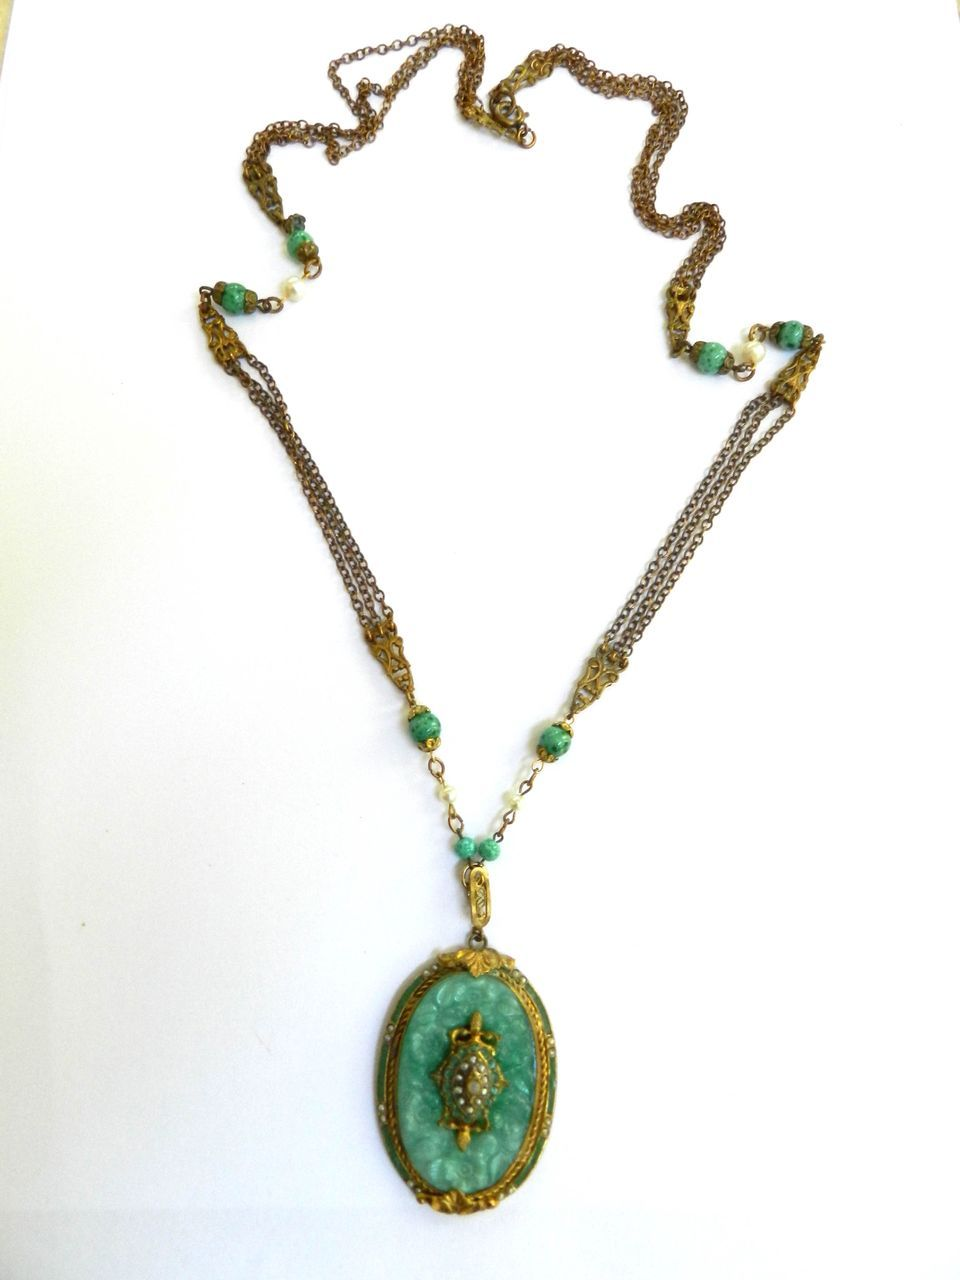 Return to Elegance Vintage Faux Jade and Faux Pearl Pendant Necklace